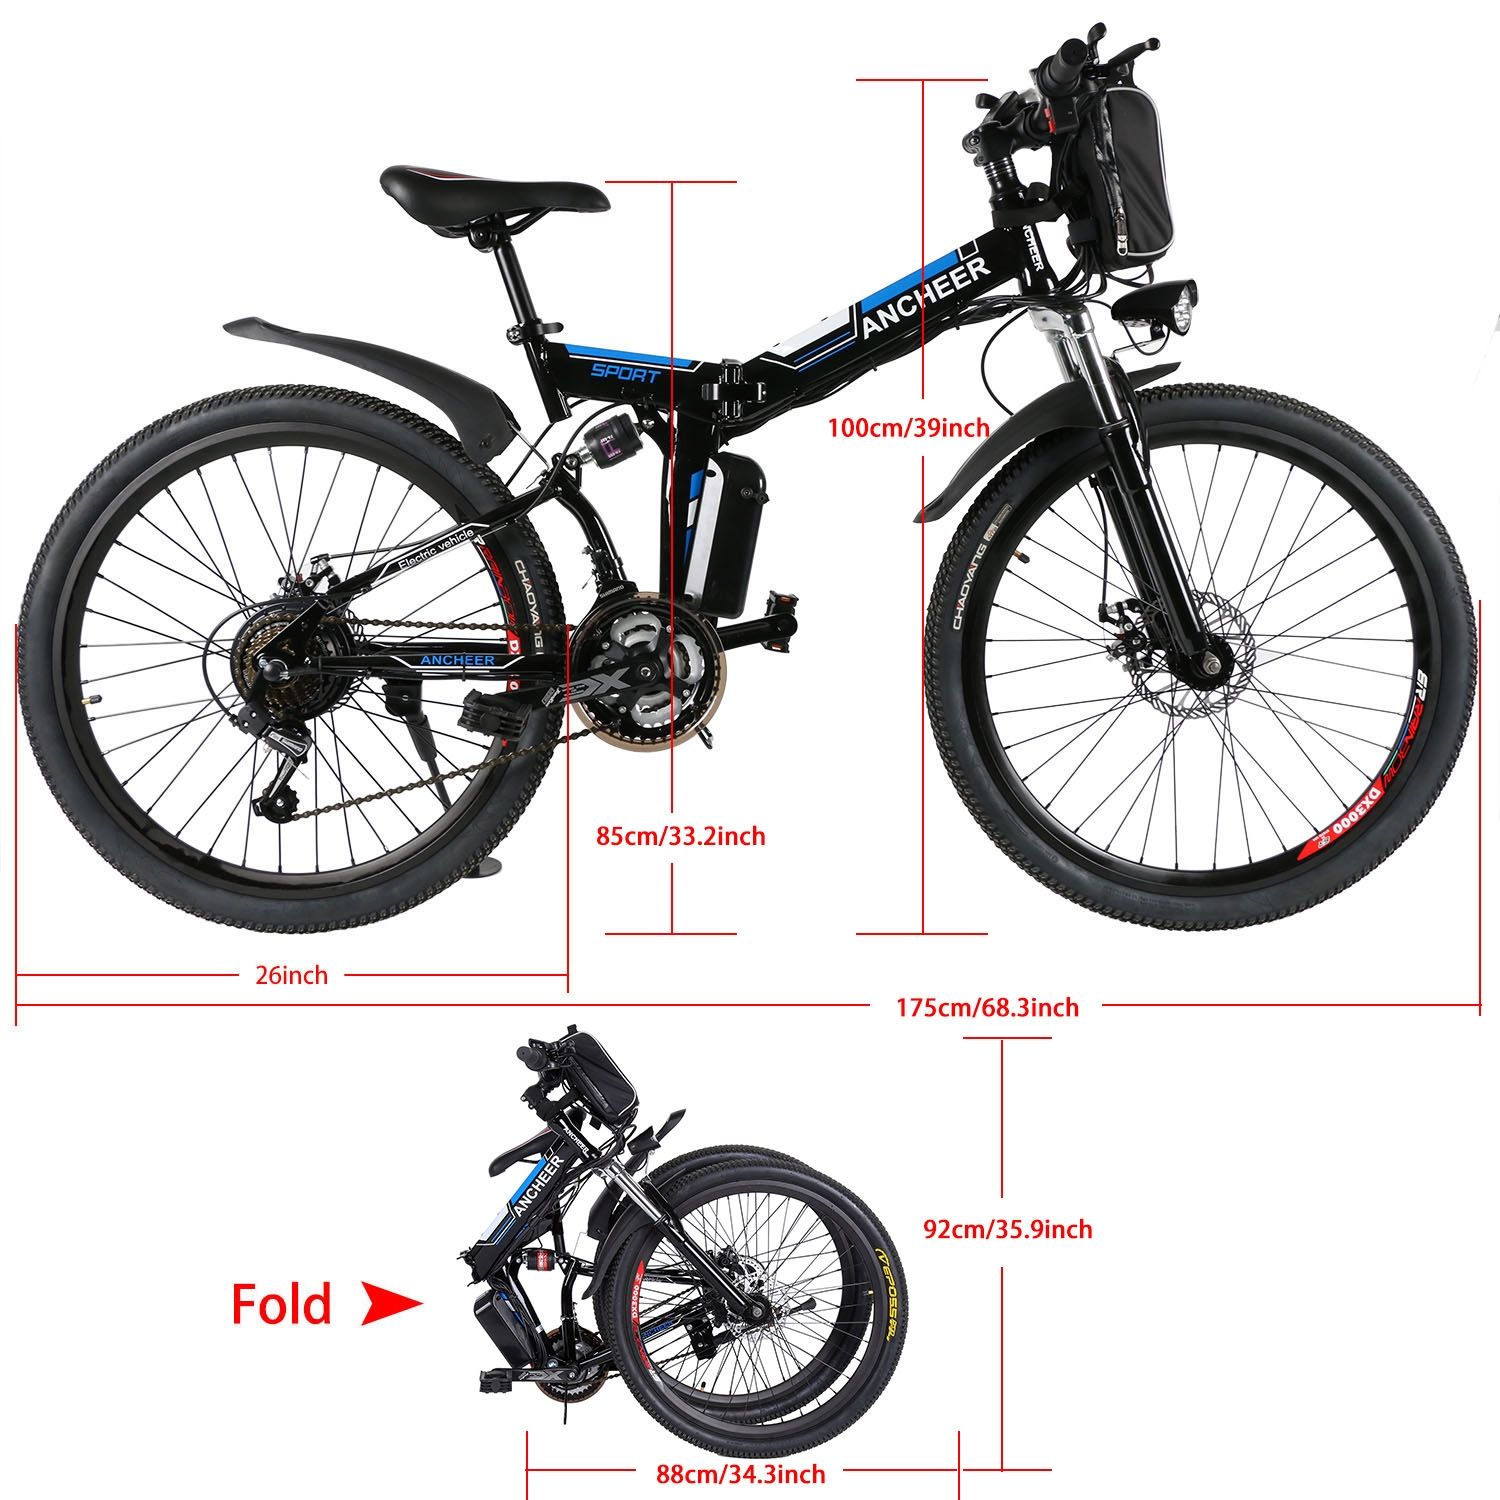 "36V 26"" Foldable Electric Power Mountain Bike Bicycle Lithium-Ion Battery Aluminum Alloy Frame Shimano 7th gear transmission  BYE"